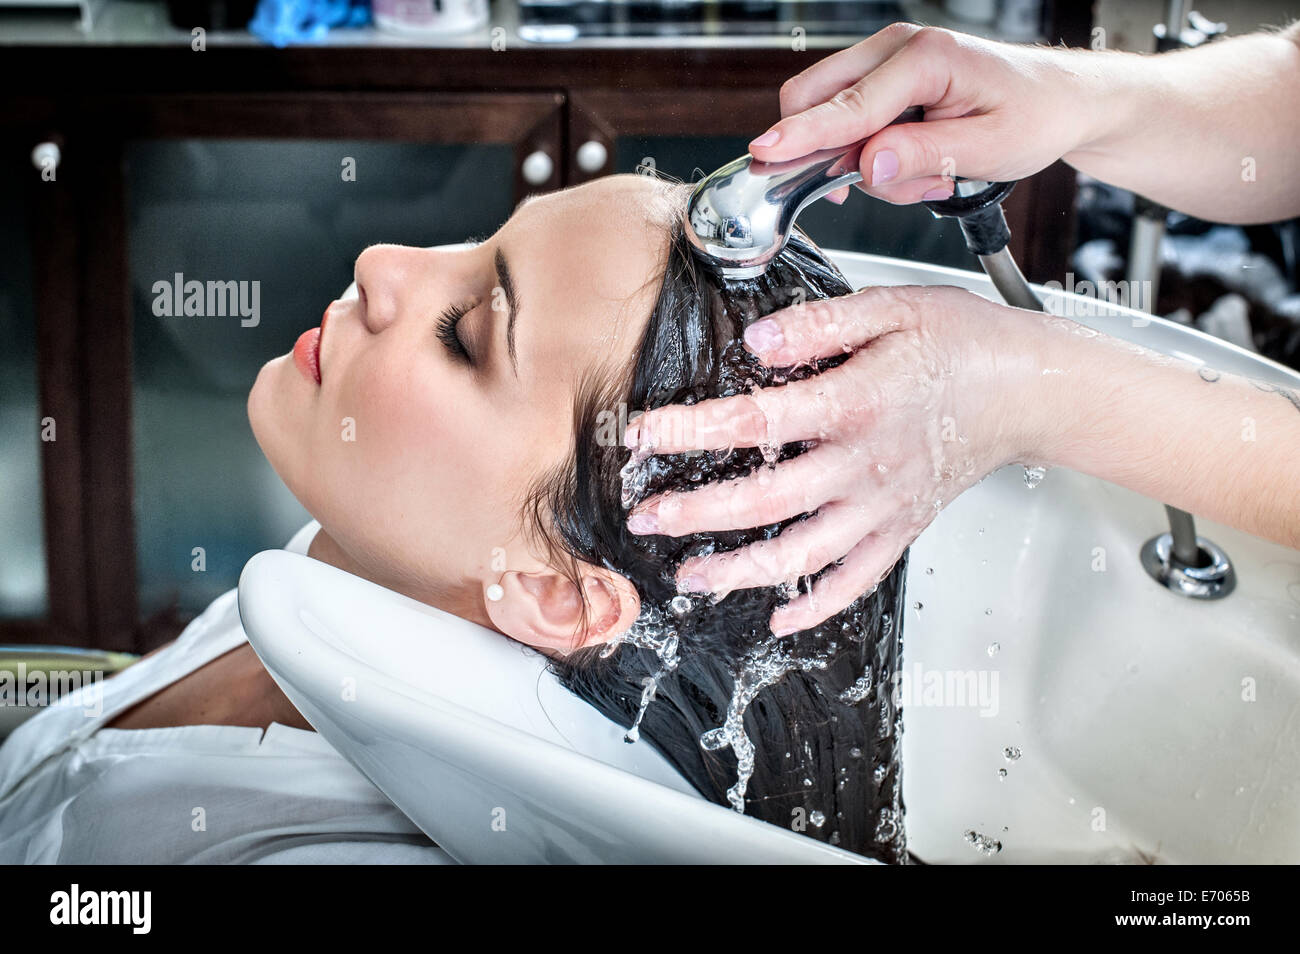 Female hairdresser rinsing young woman's hair in hair salon - Stock Image